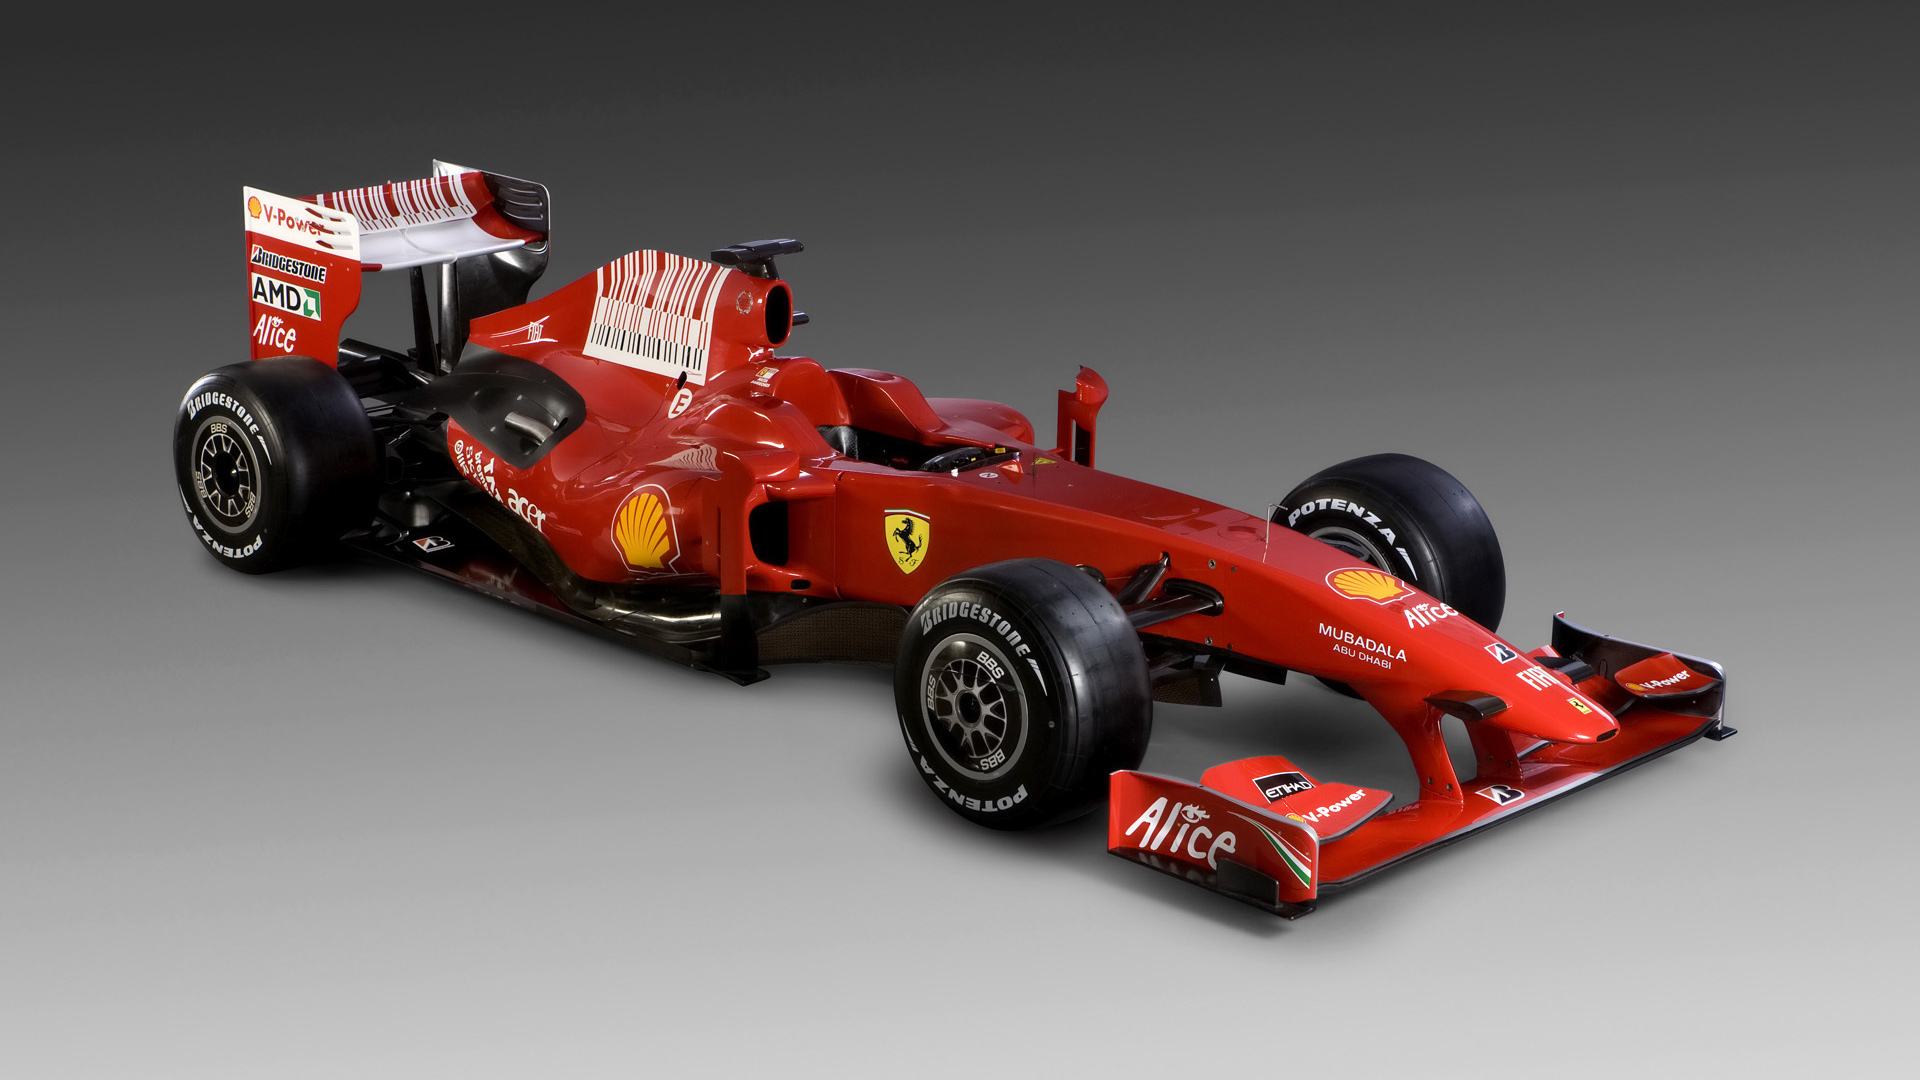 F1 Race Car Wallpapers